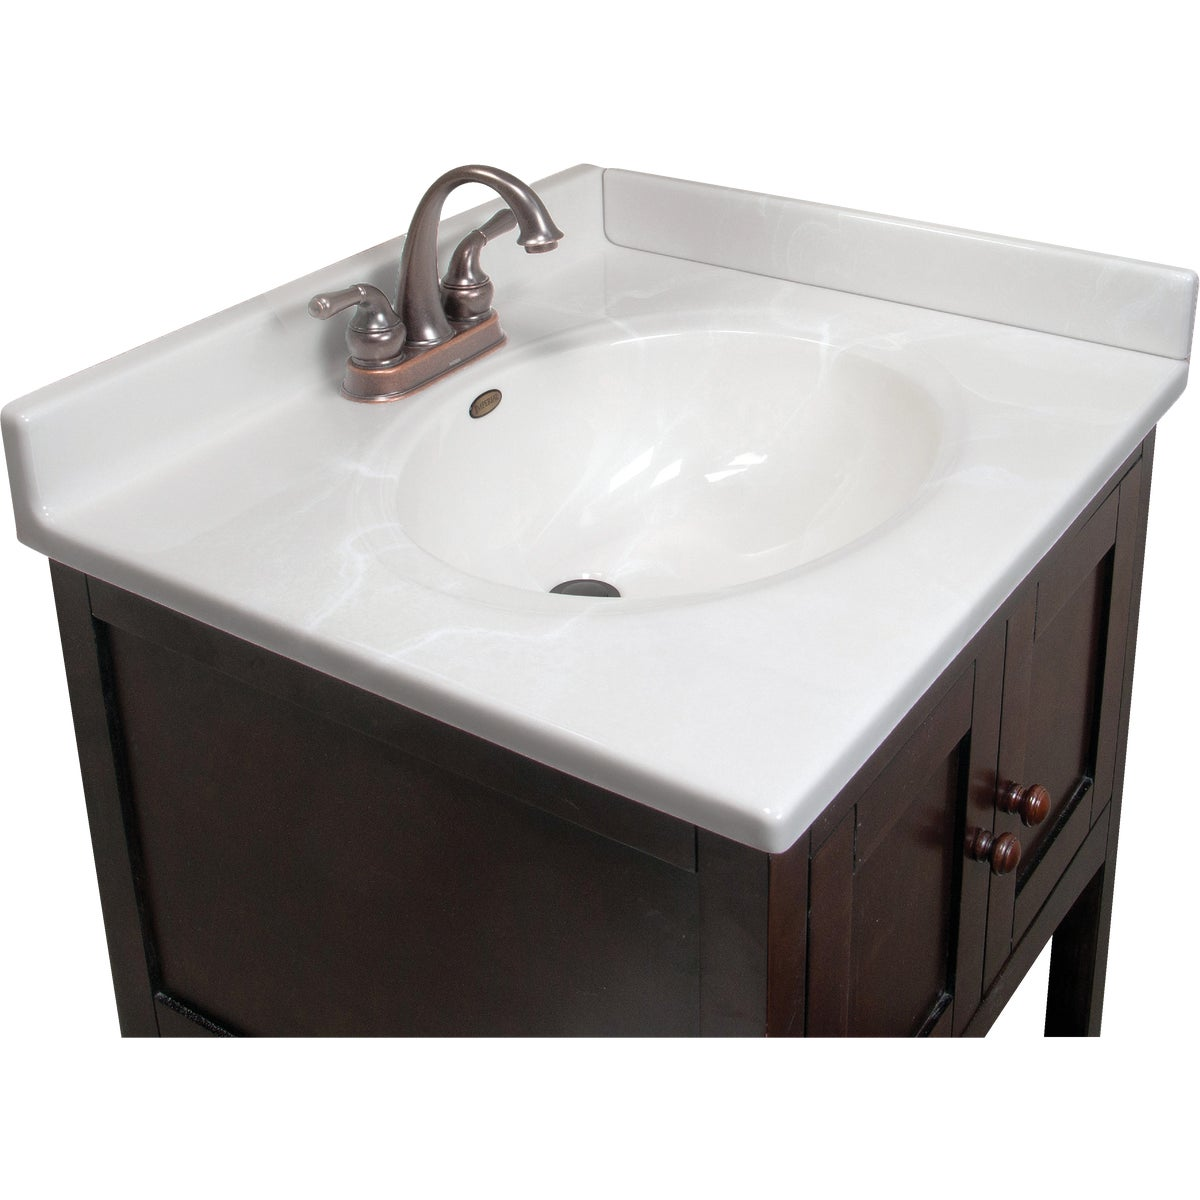 25X22 WHT/WHT VANITY TOP - VC2522W by Imperial Marble Corp